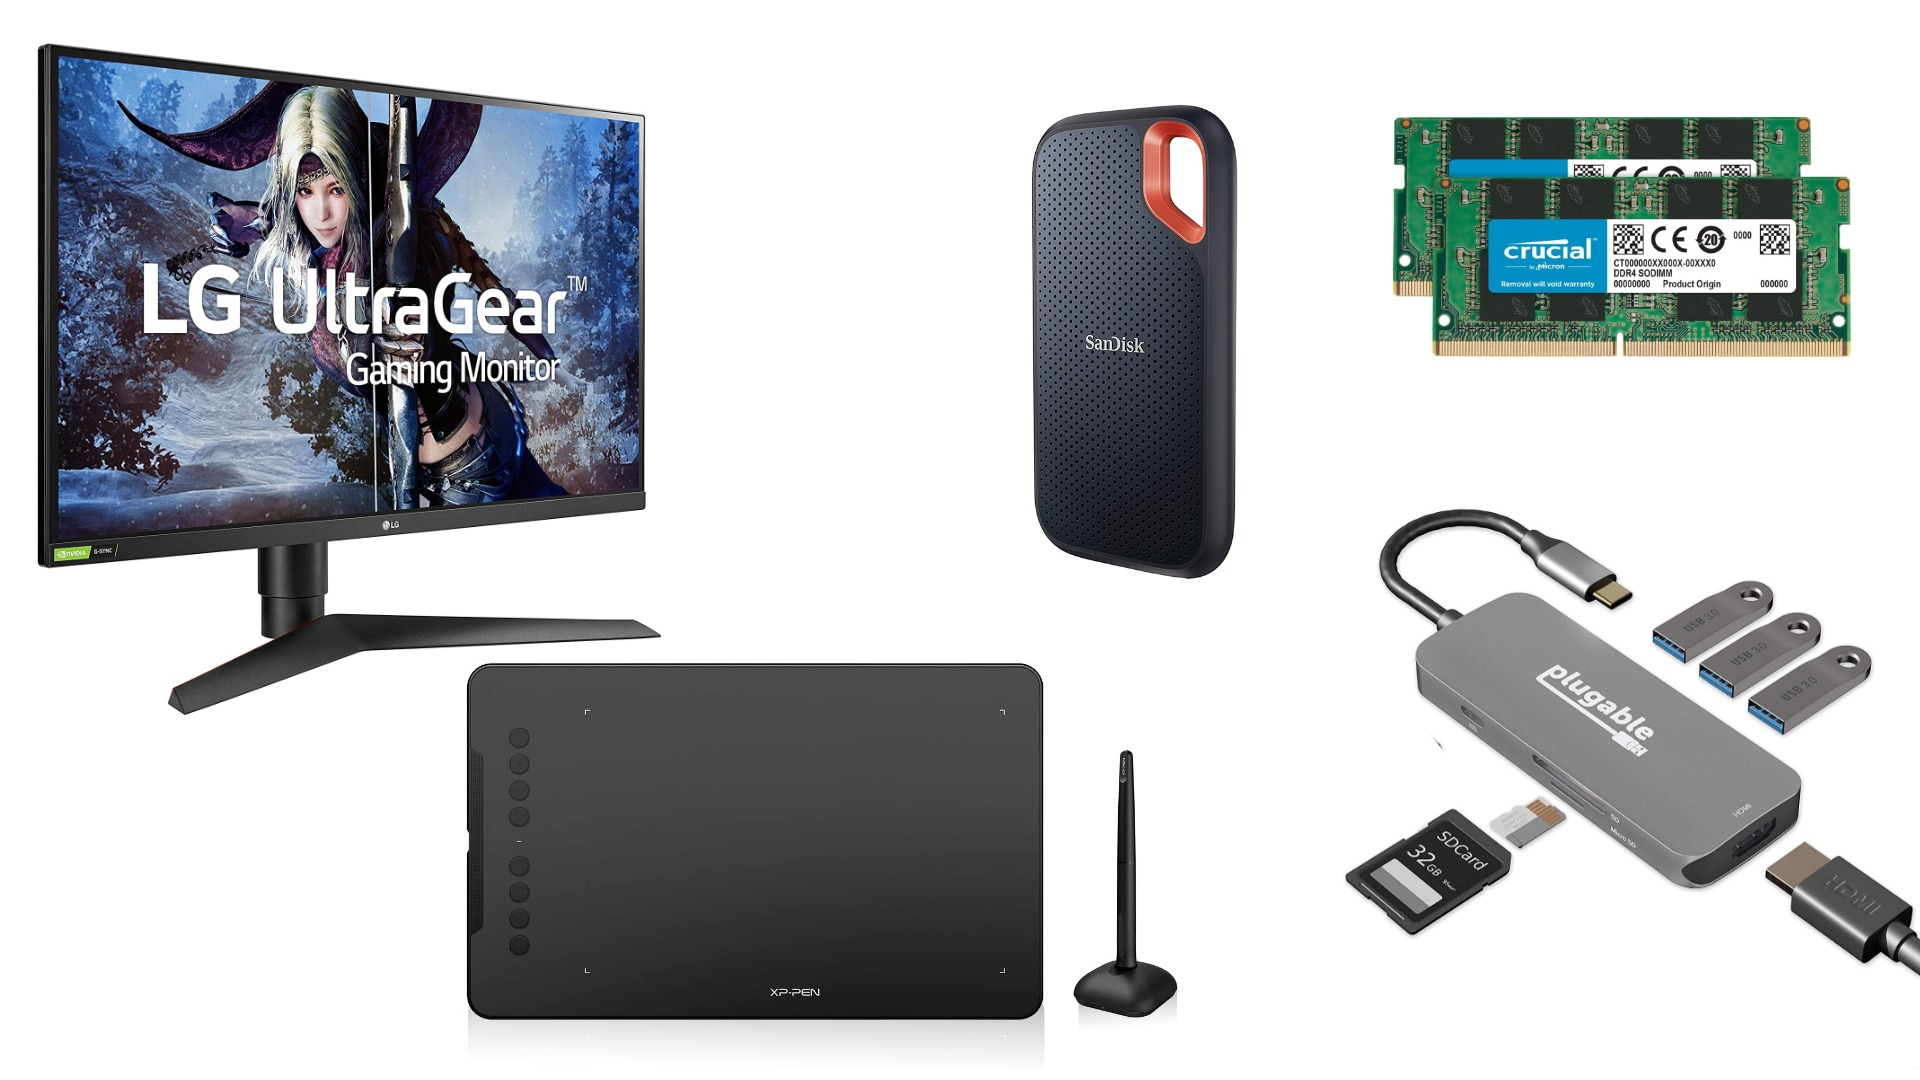 Prime Day Roundup: Monitors, Accessories, Upgrades and more